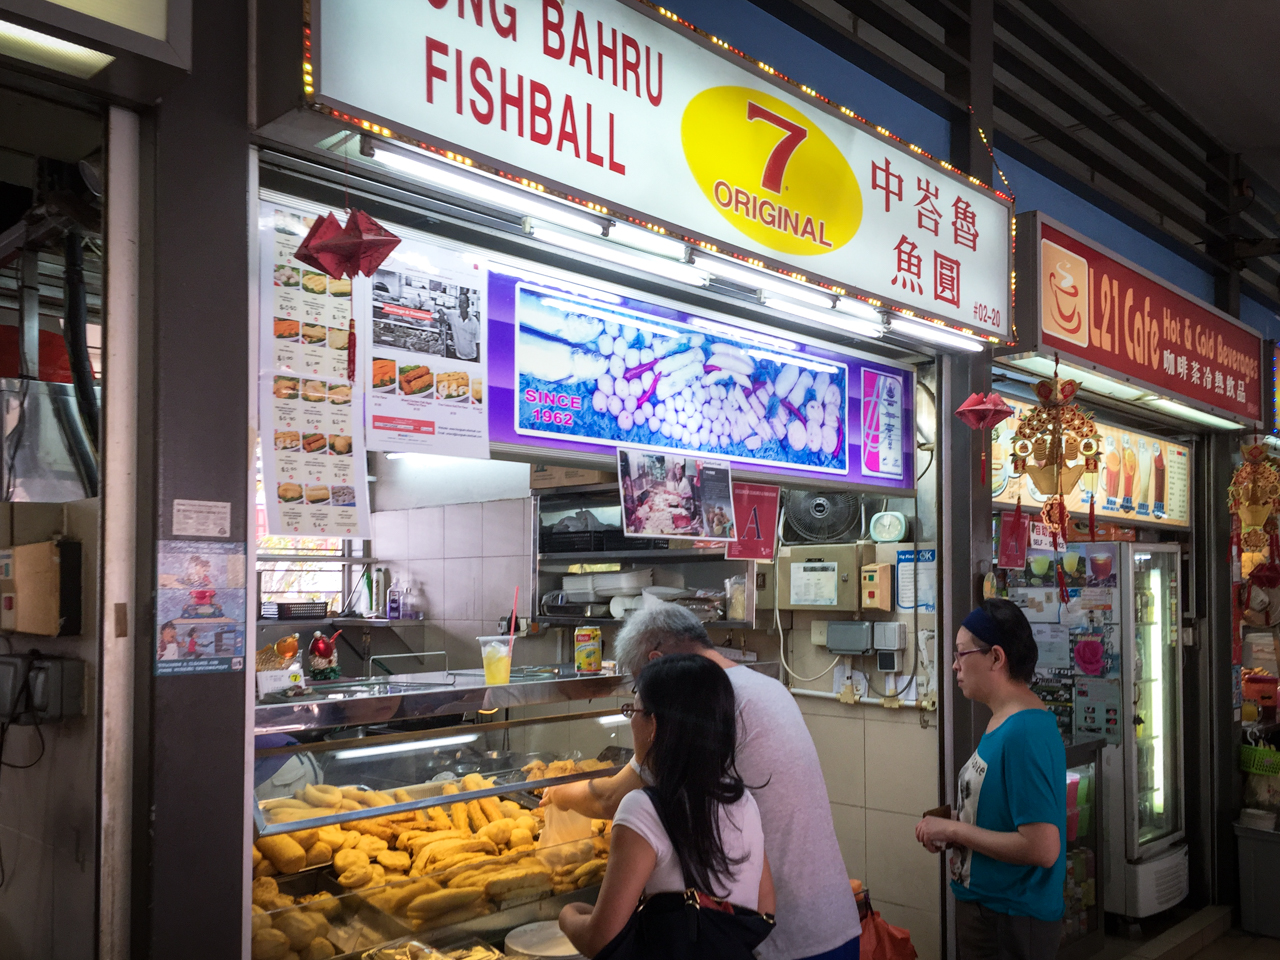 Tiong Bahru Food Court